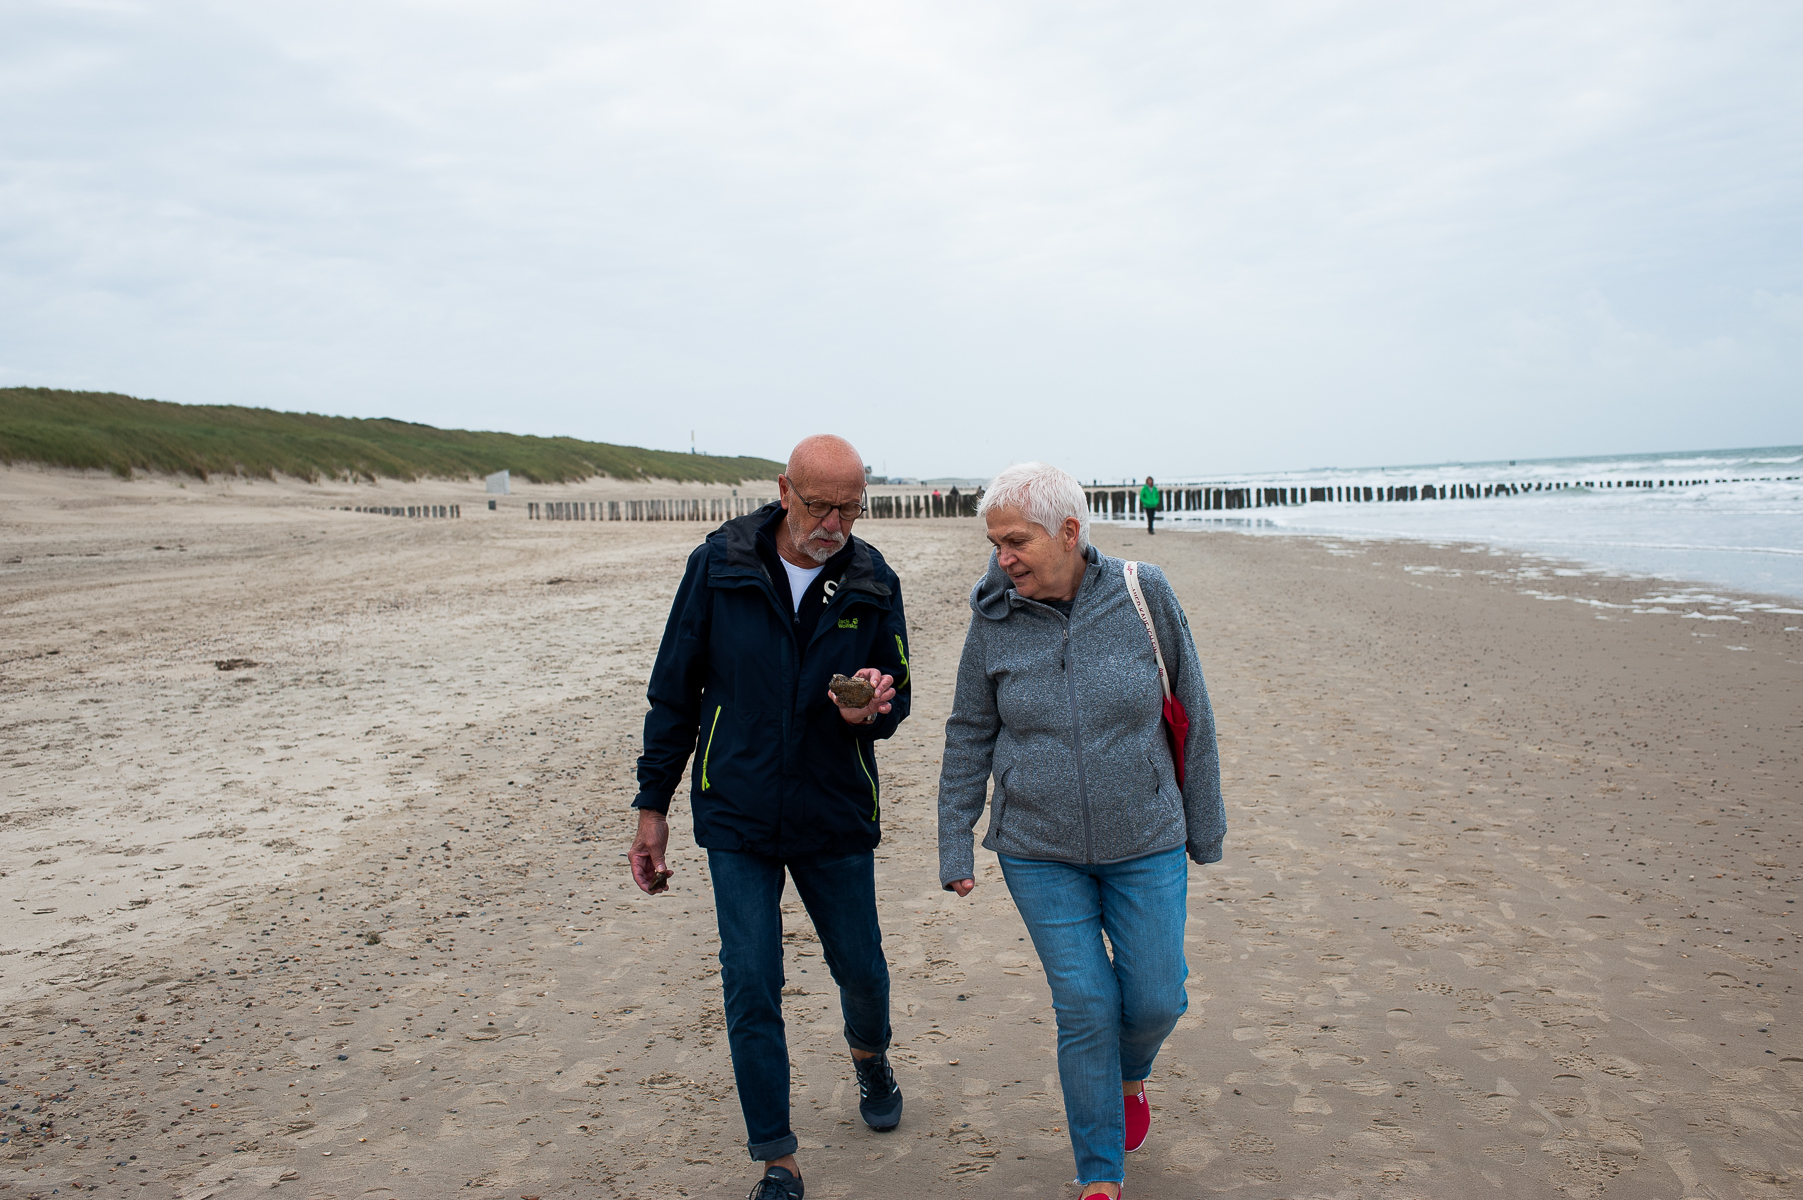 Dad shows mom a pebble he's found on the beach. Domburg, Netherlands, October 8, 2019.